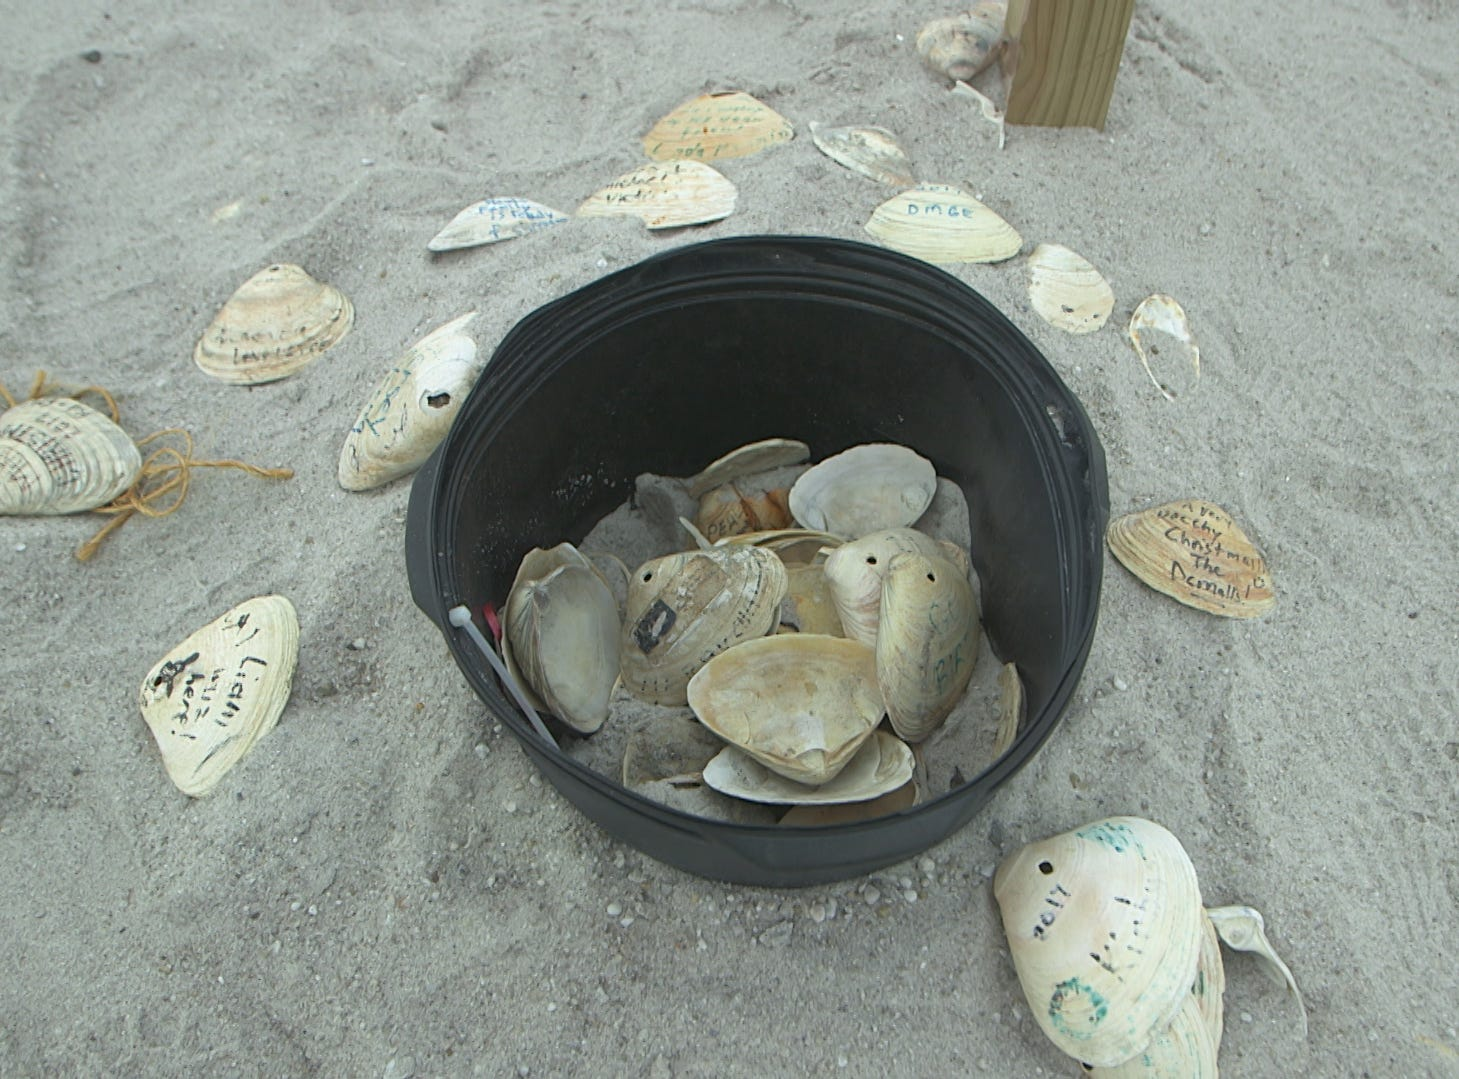 Clams act as ornaments for the Normandy Beach Christmas tree